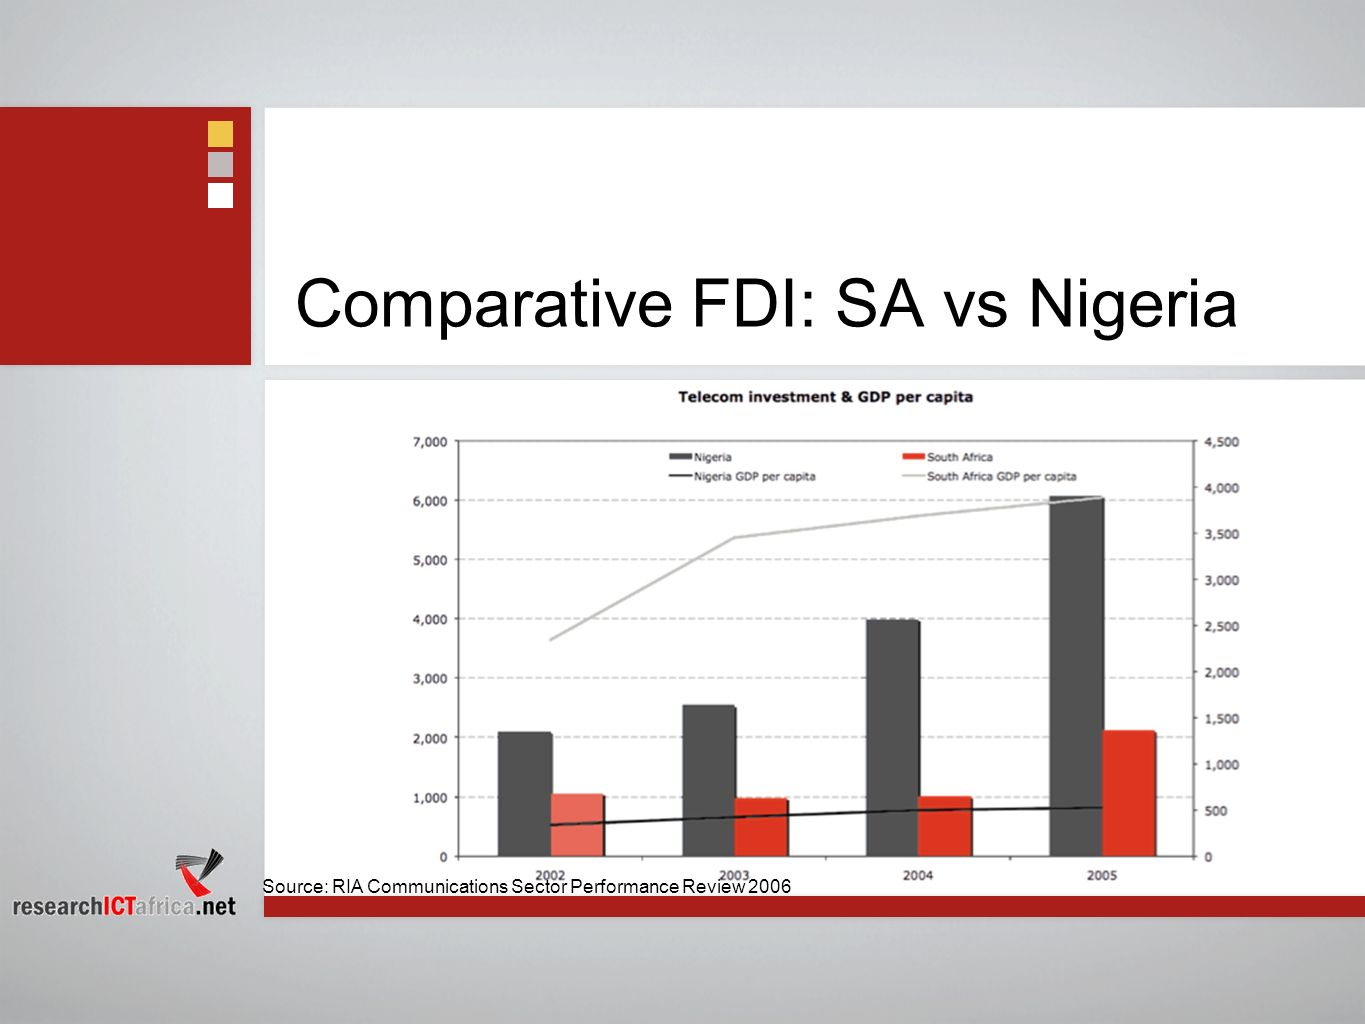 Comparative FDI: SA vs Nigeria